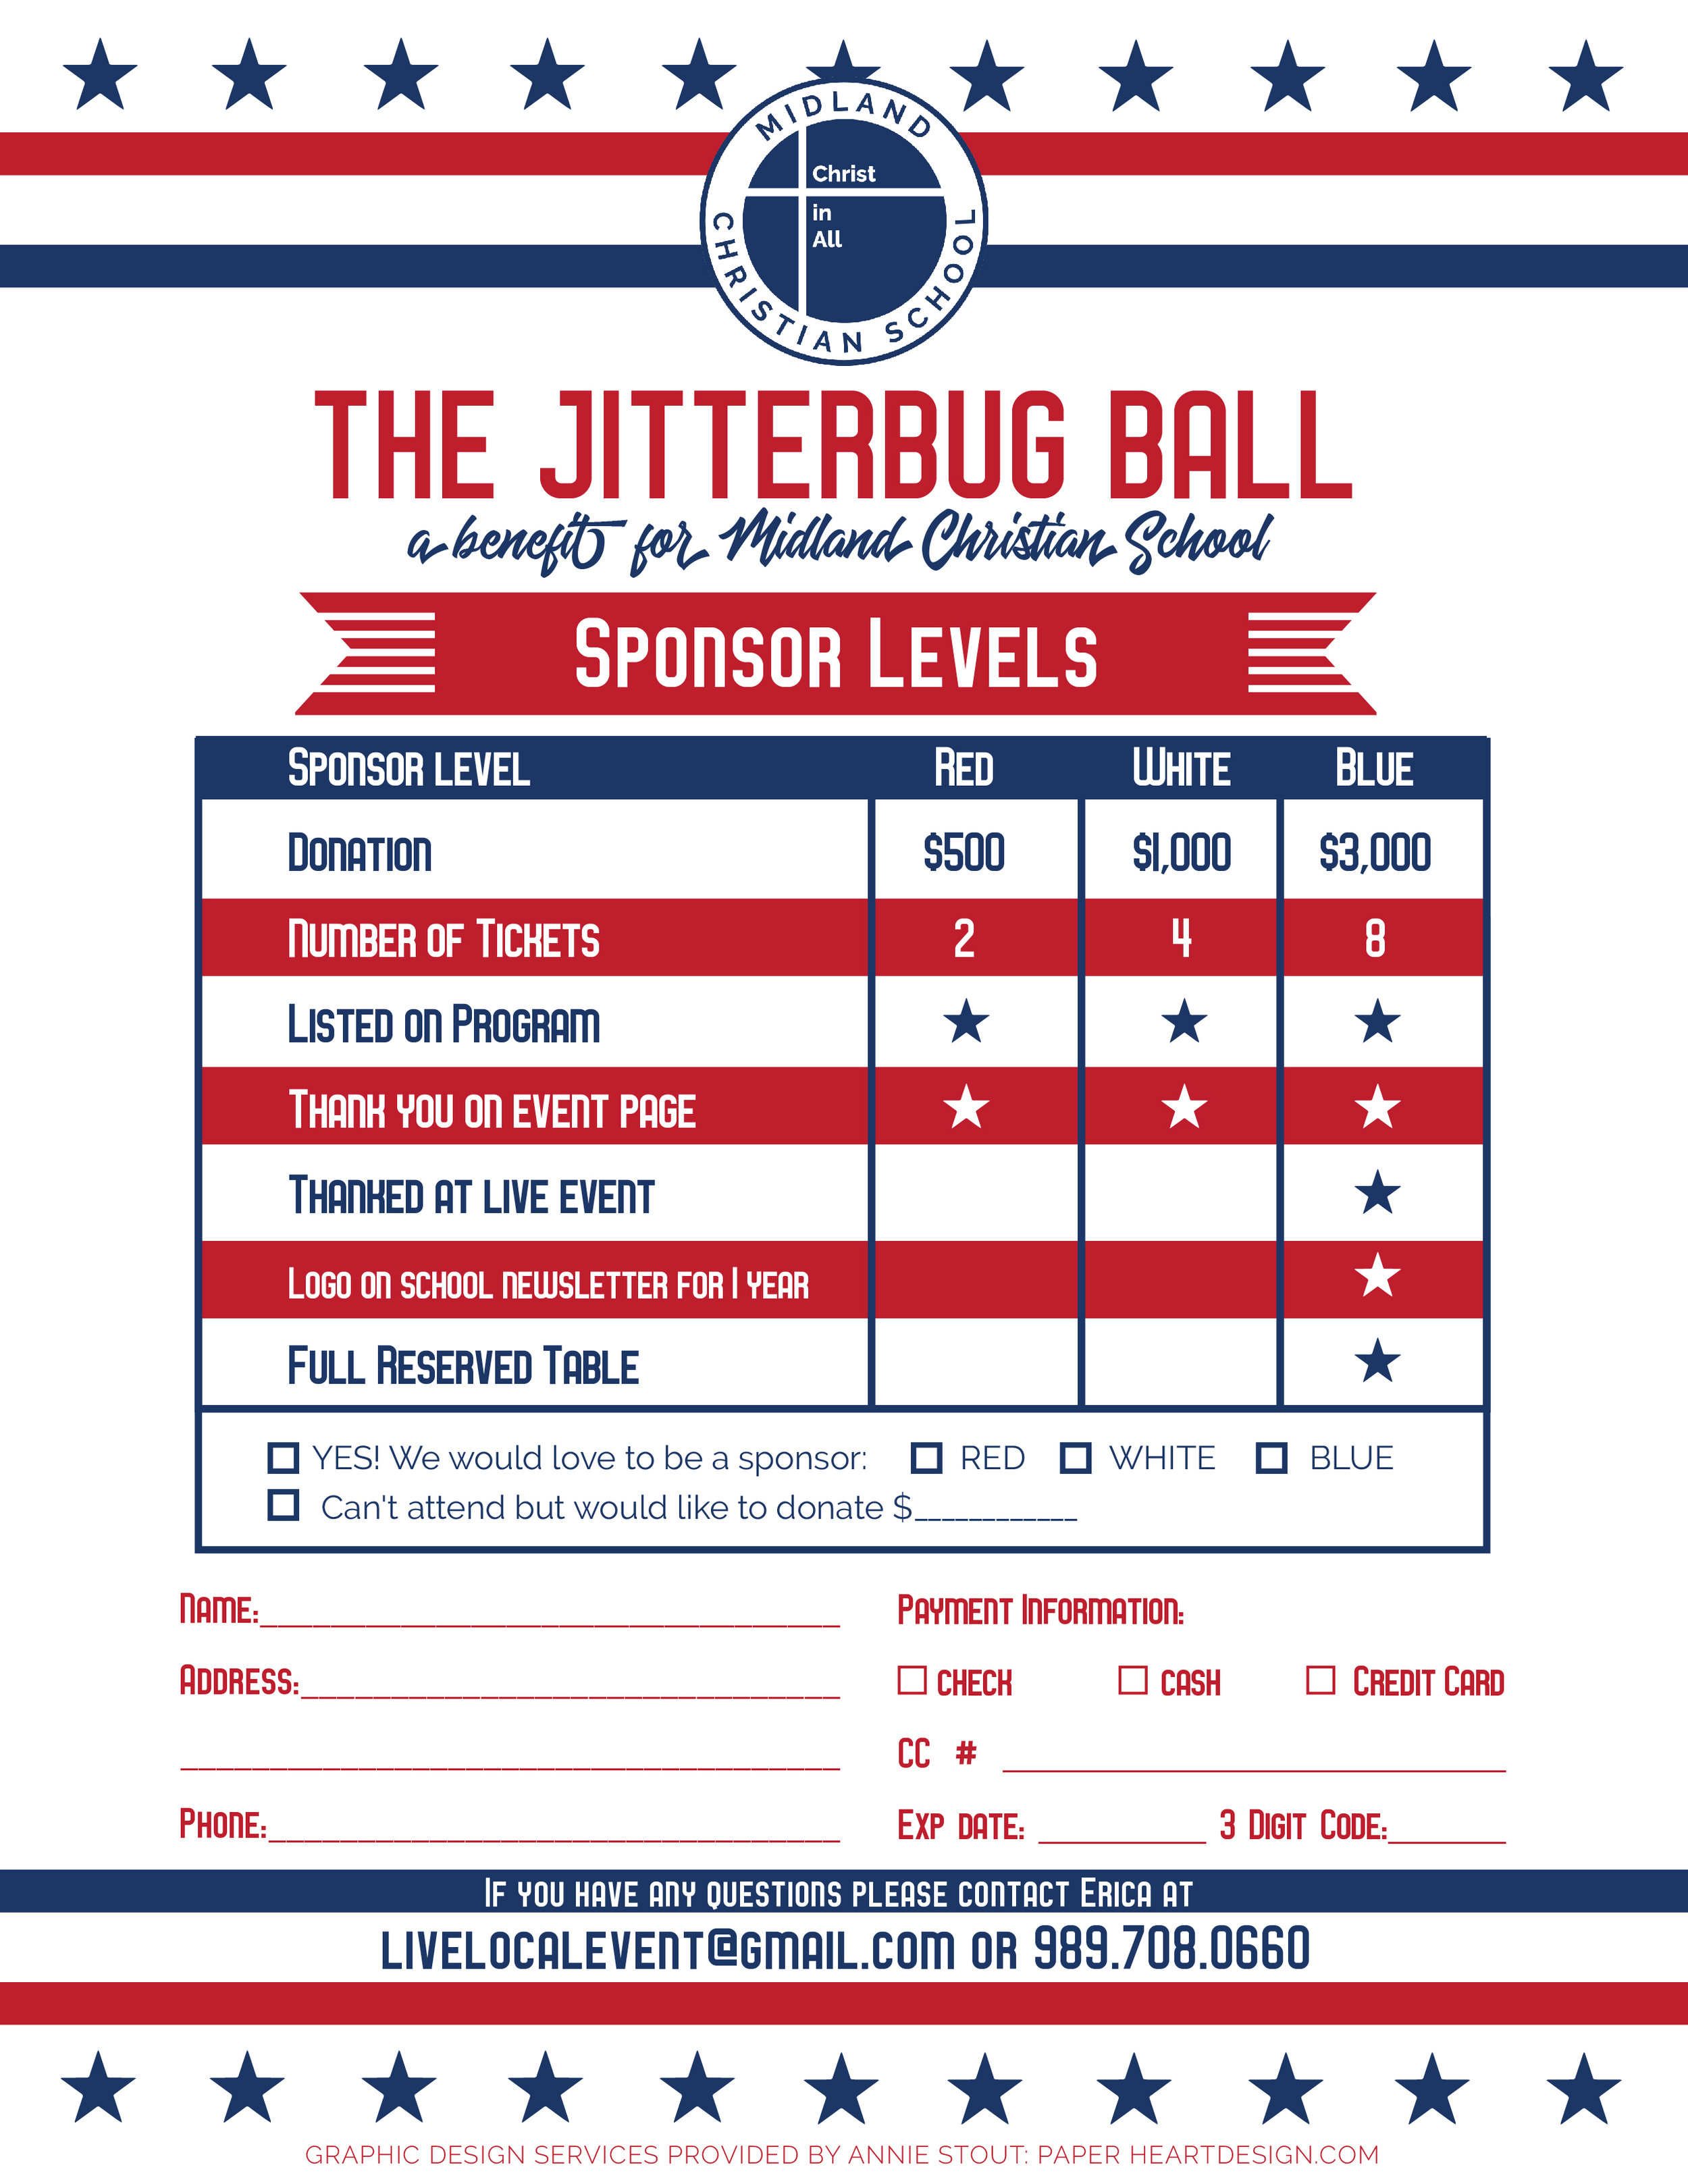 Jitterbug Ball Event Sponsor Levels-01.jpg